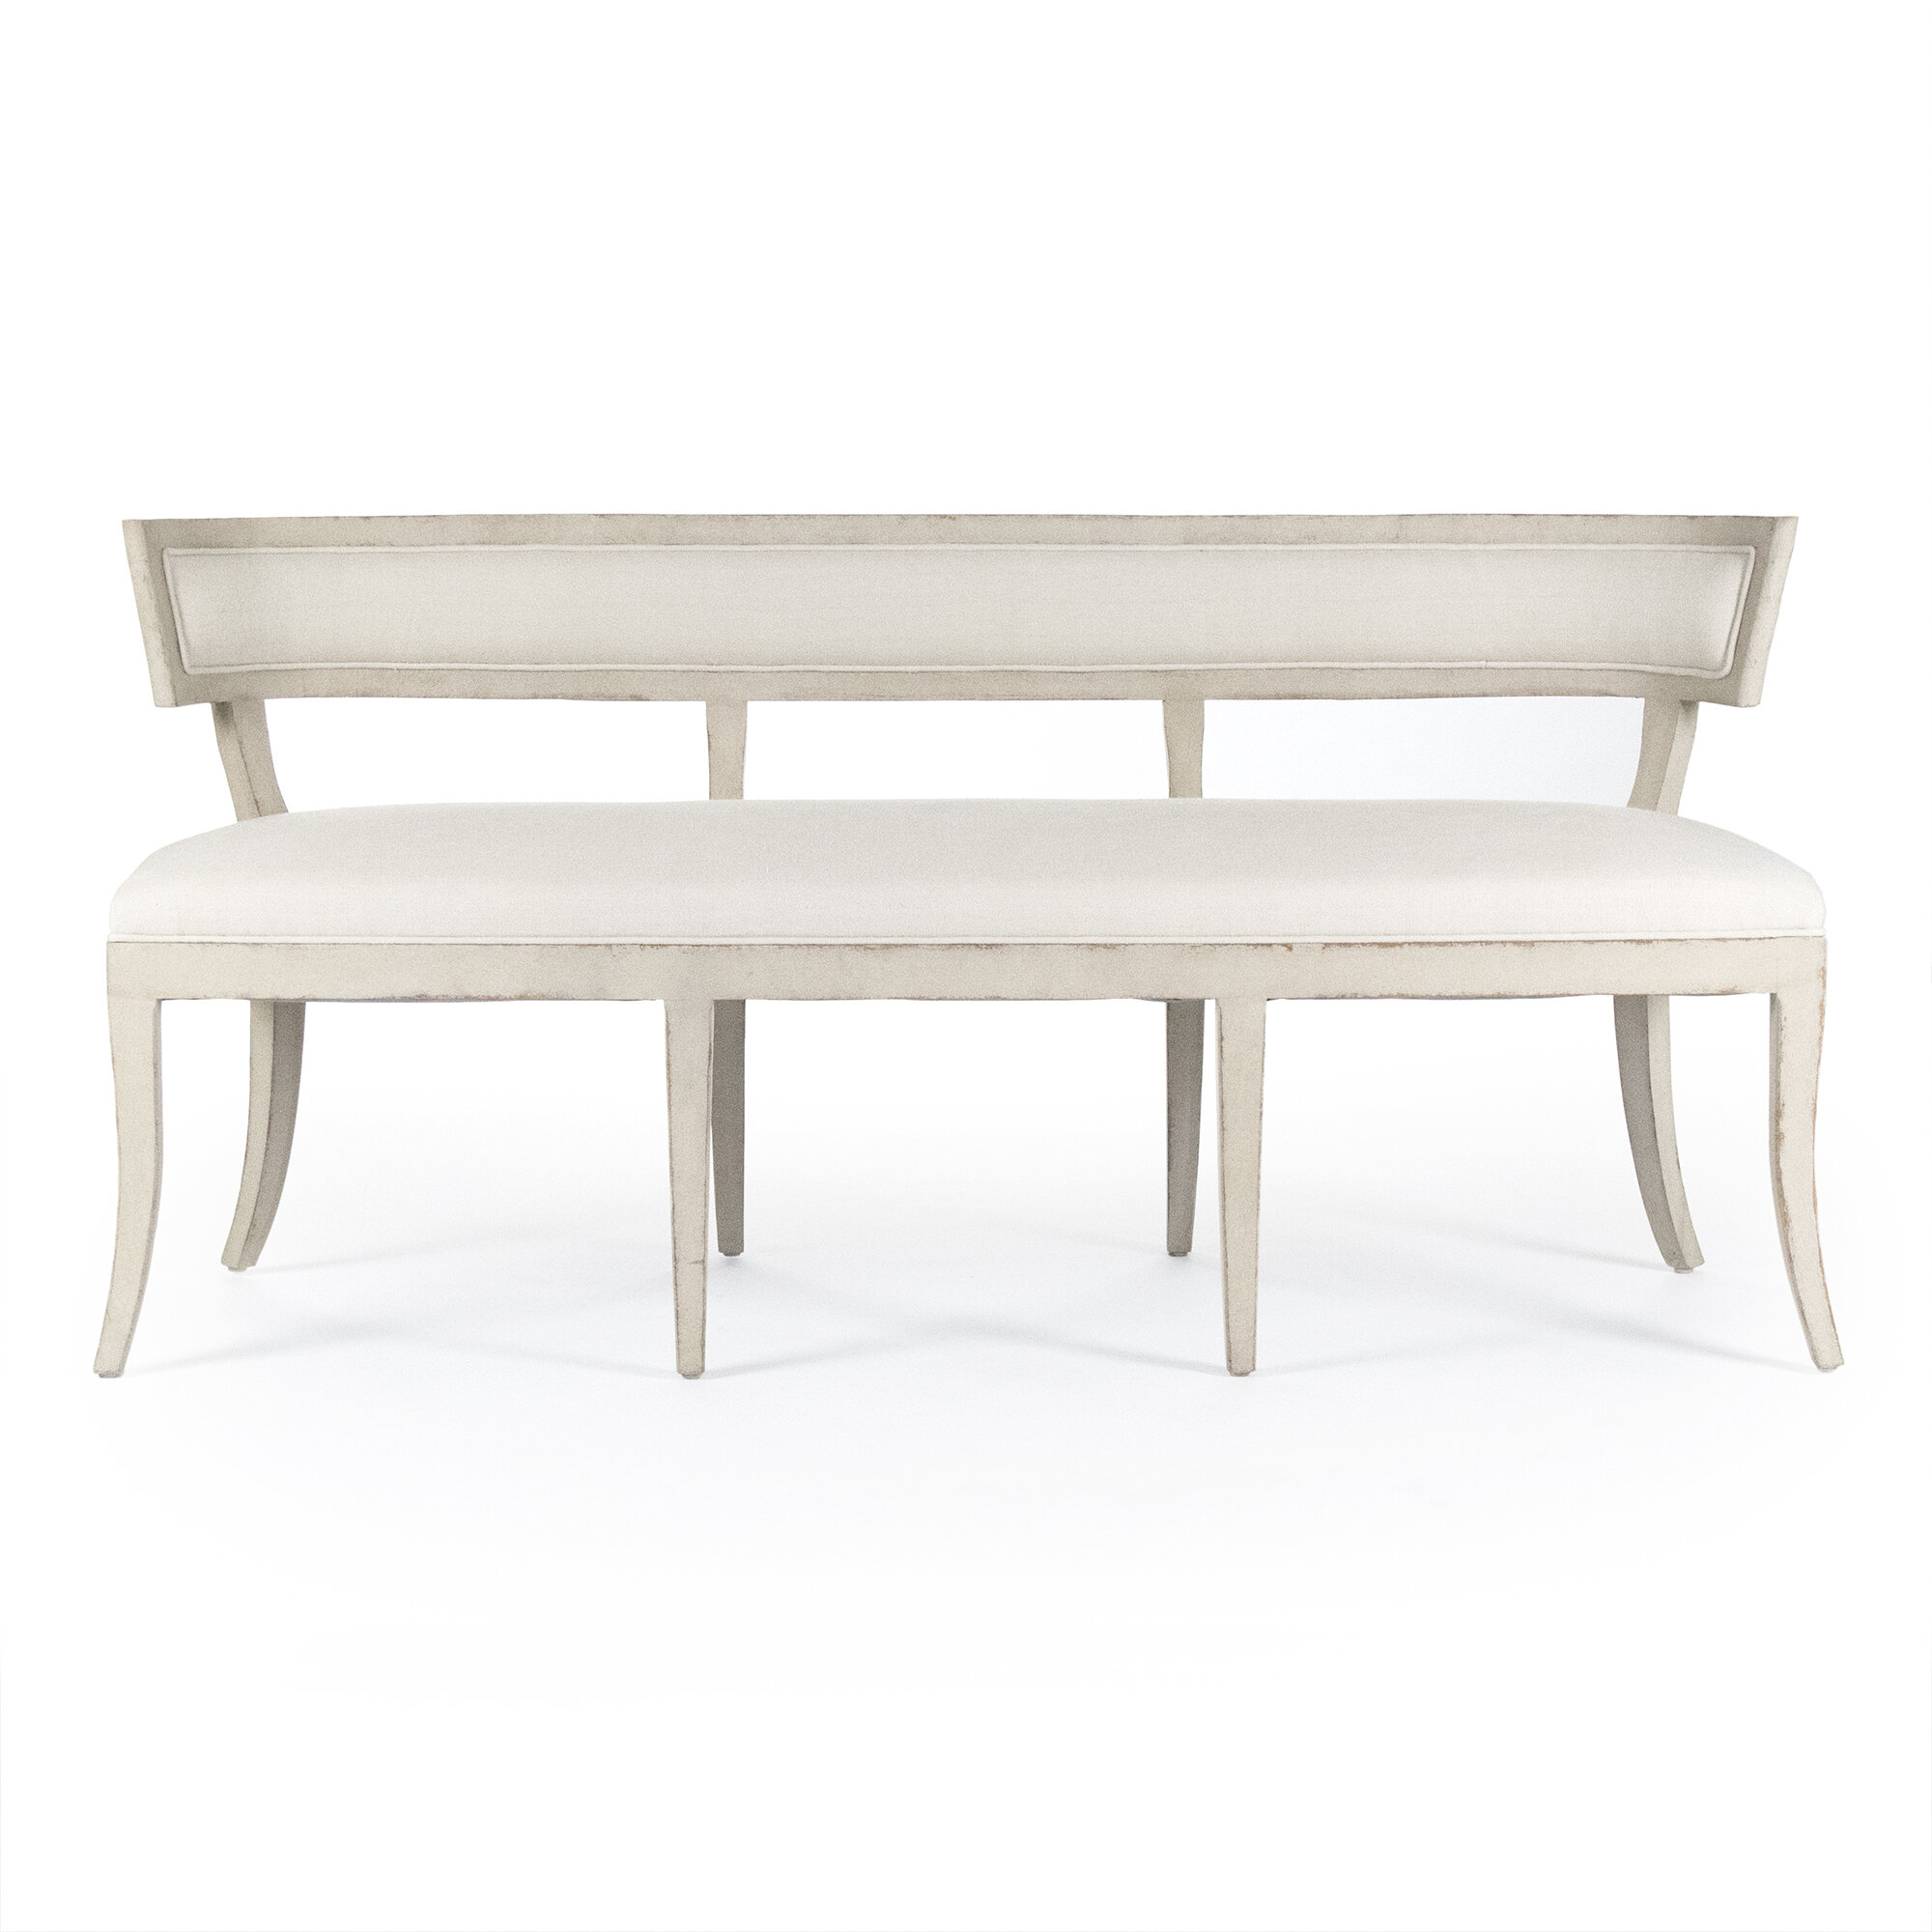 Upholstered Zentique Benches You Ll Love In 2021 Wayfair